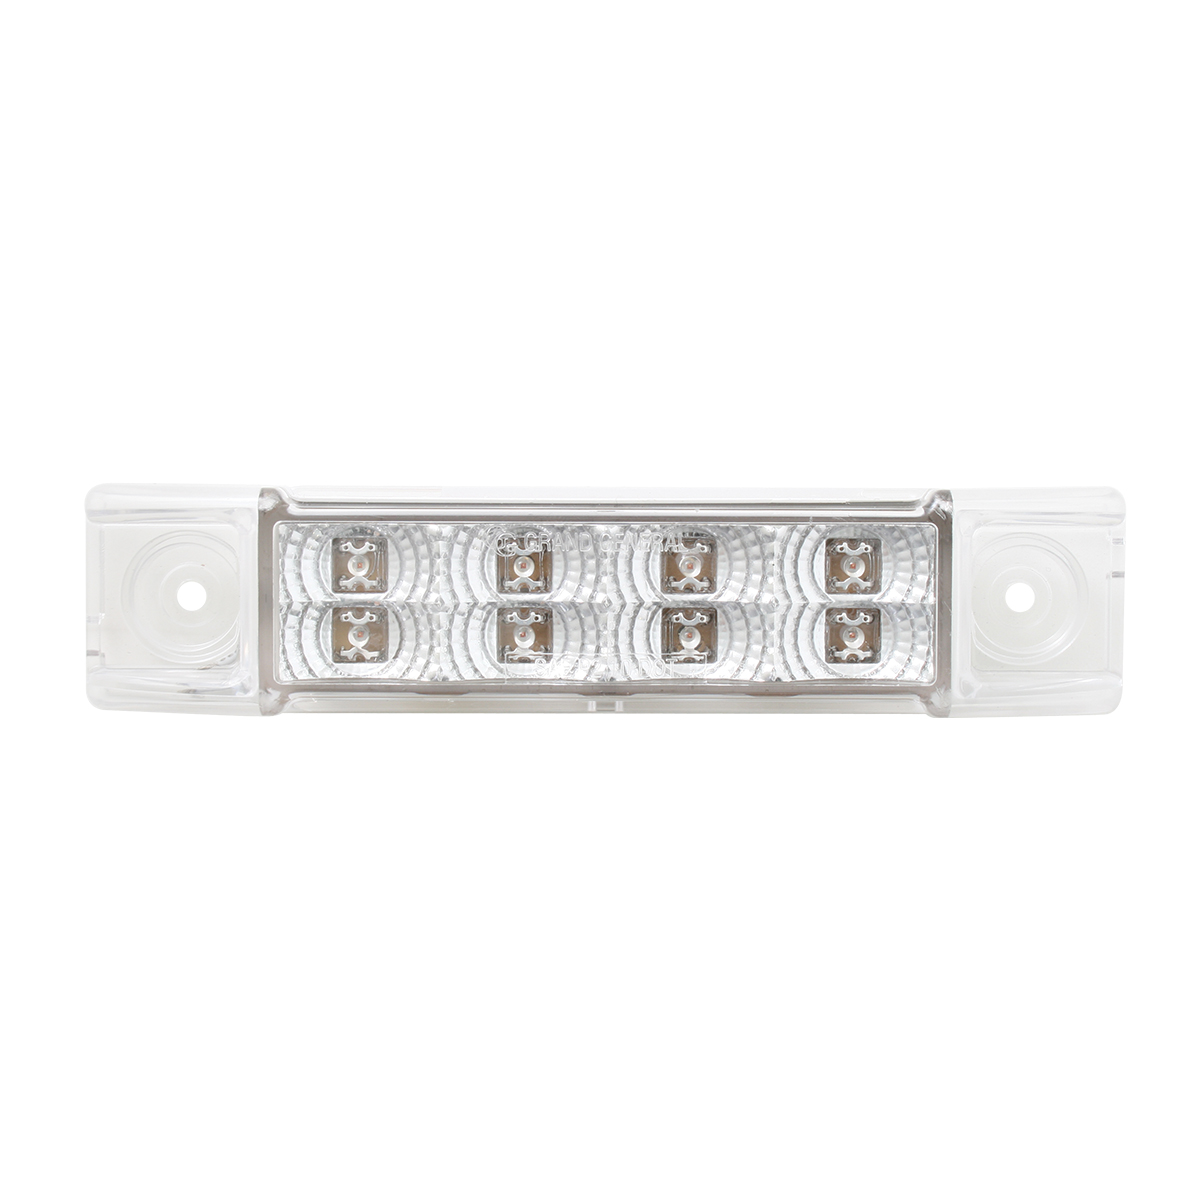 Slim Rectangular Spyder LED Light in Clear Lens